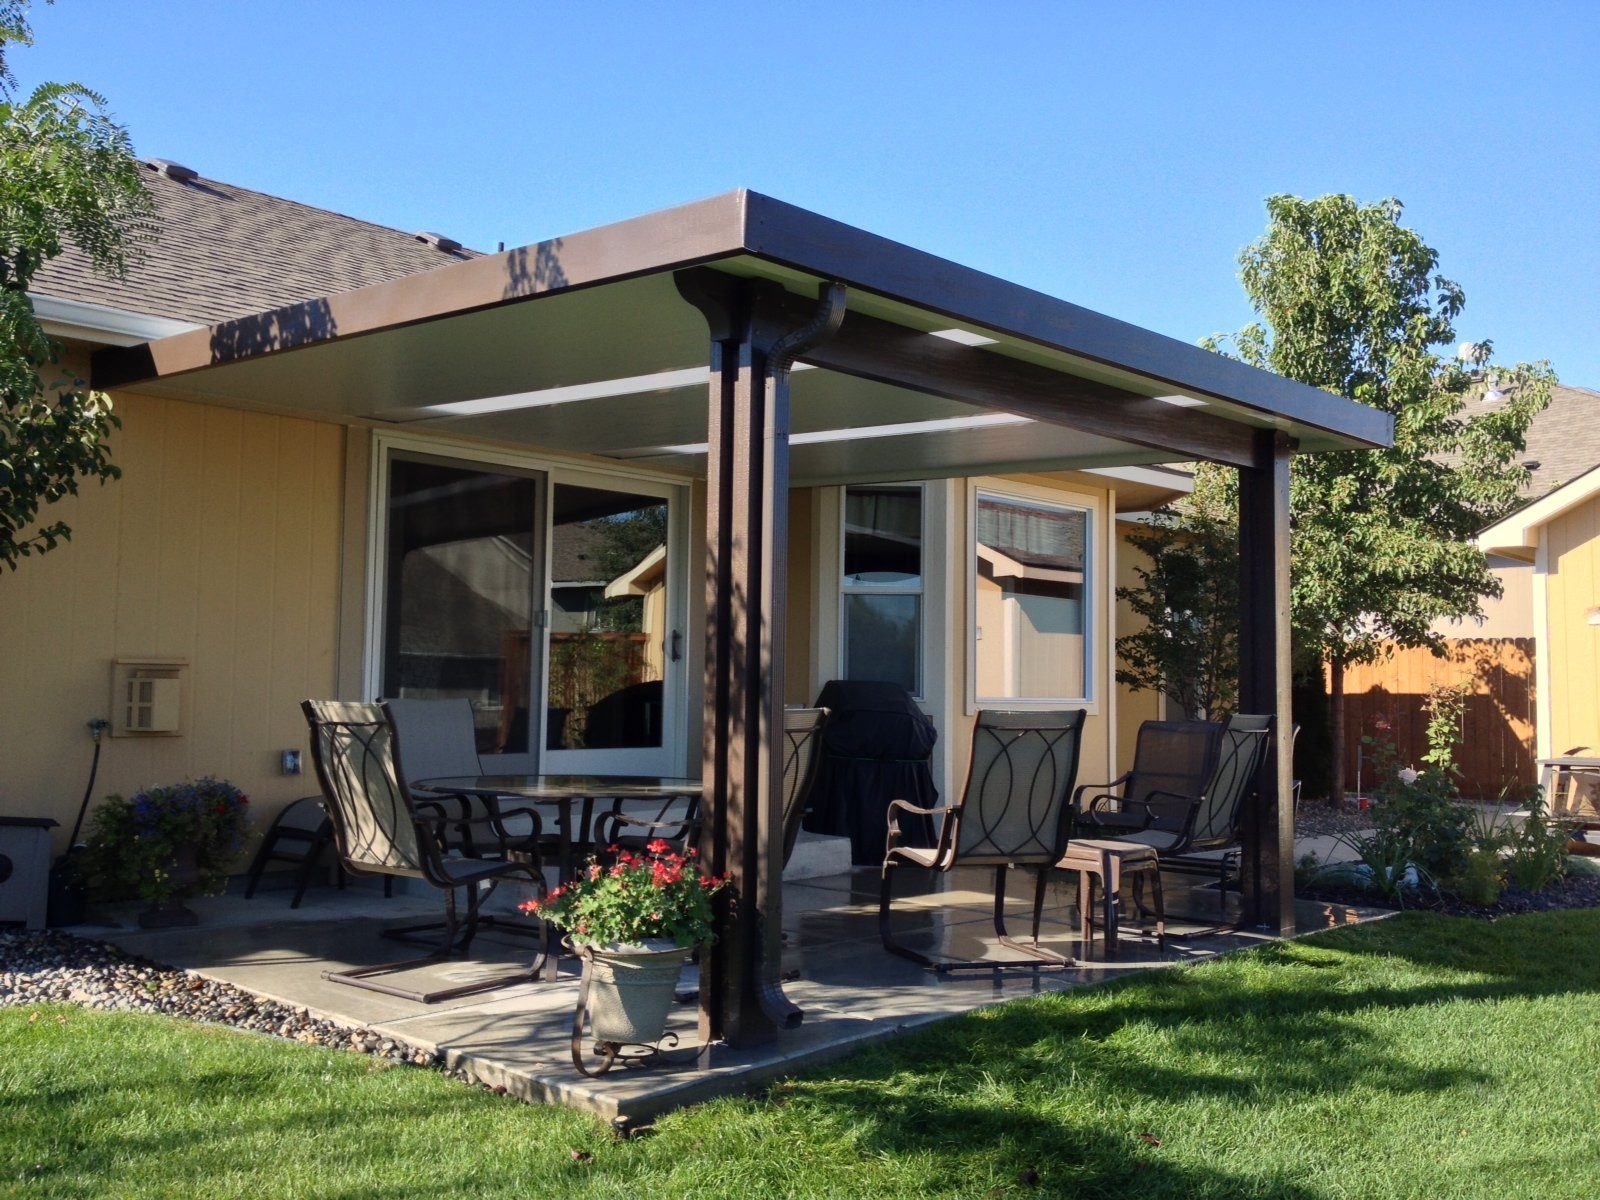 Patio Cover Gallery - Backyard By Design on Backyard Patio Cover  id=24746